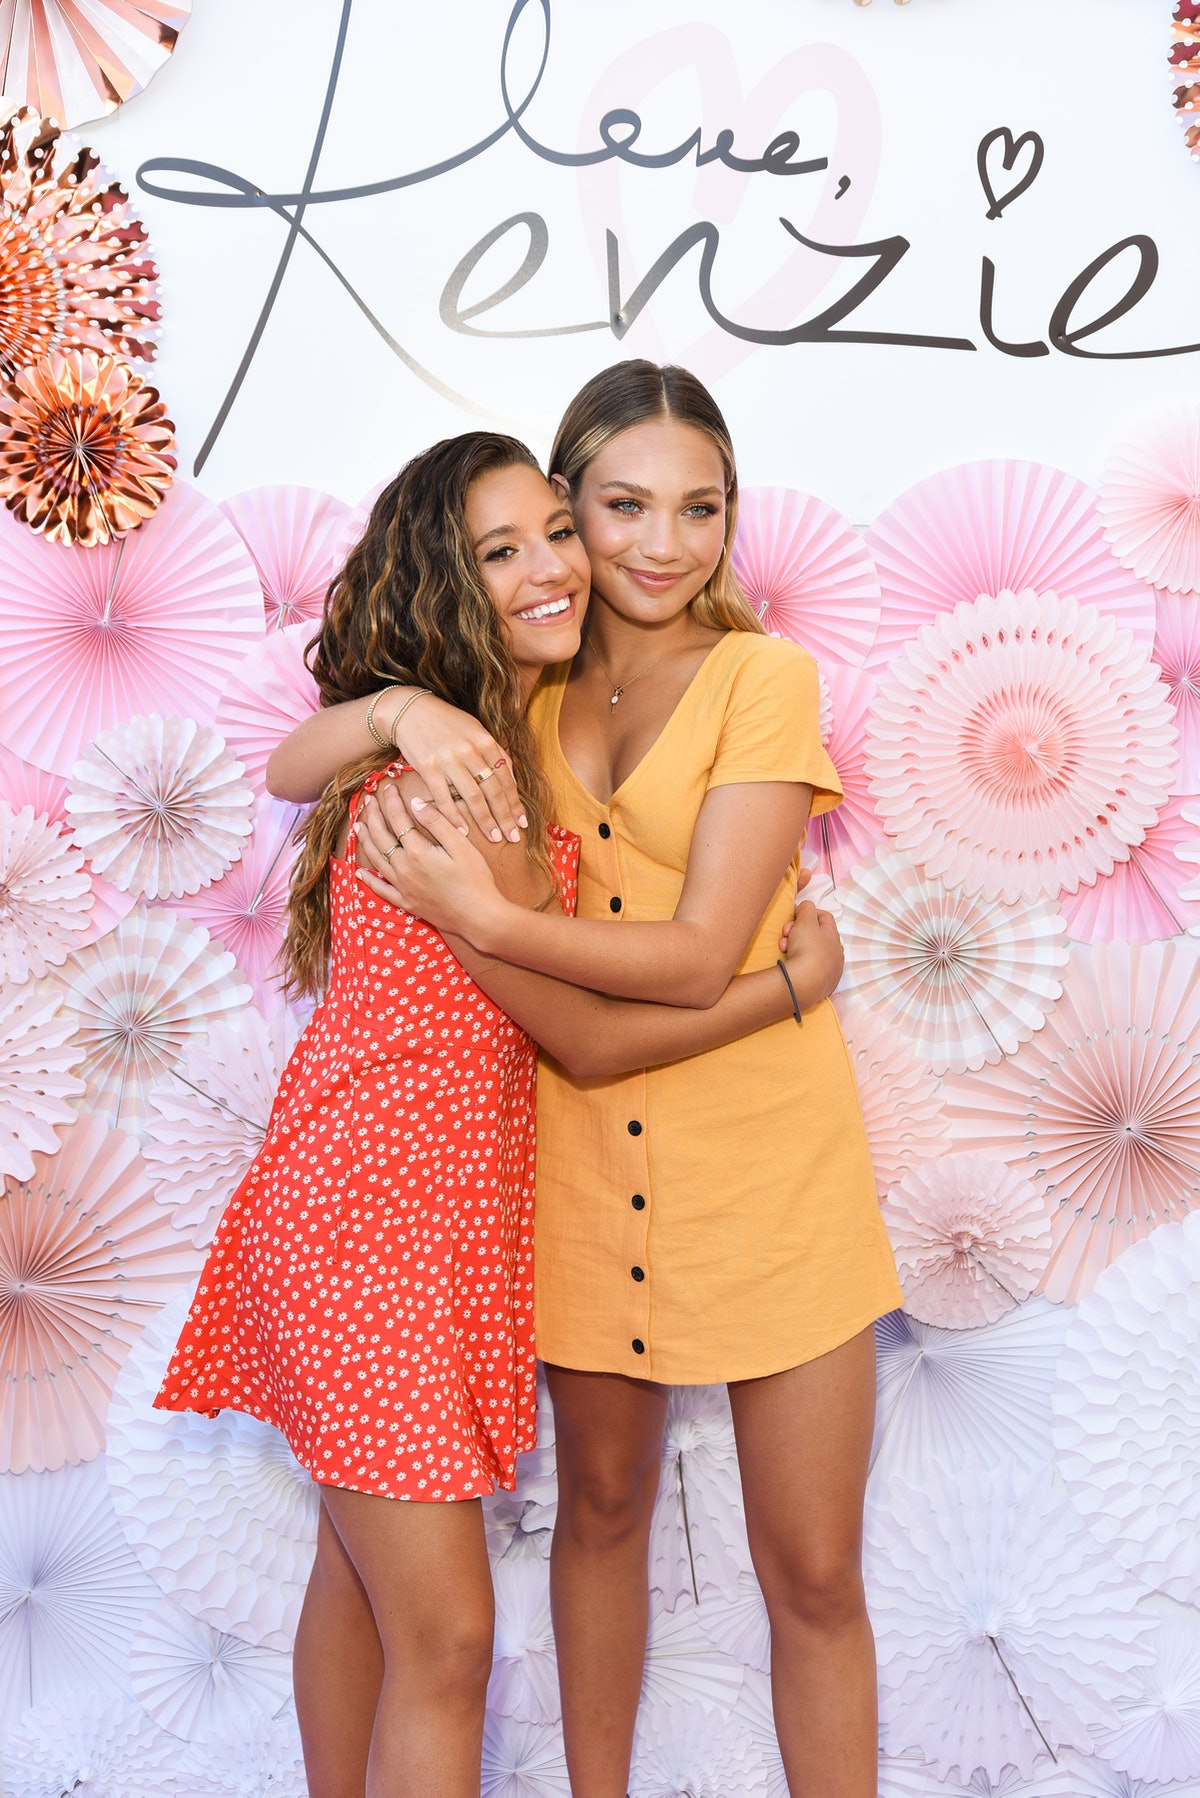 """WEST HOLLYWOOD, CA - SEPTEMBER 16:  Mackenzie Ziegler and Maddie Ziegler attend Mackenzie Ziegler Launches New Beauty Line """"Love, Kenzie"""" on September 16, 2018 in West Hollywood, California.  (Photo by Presley Ann/Getty Images)"""